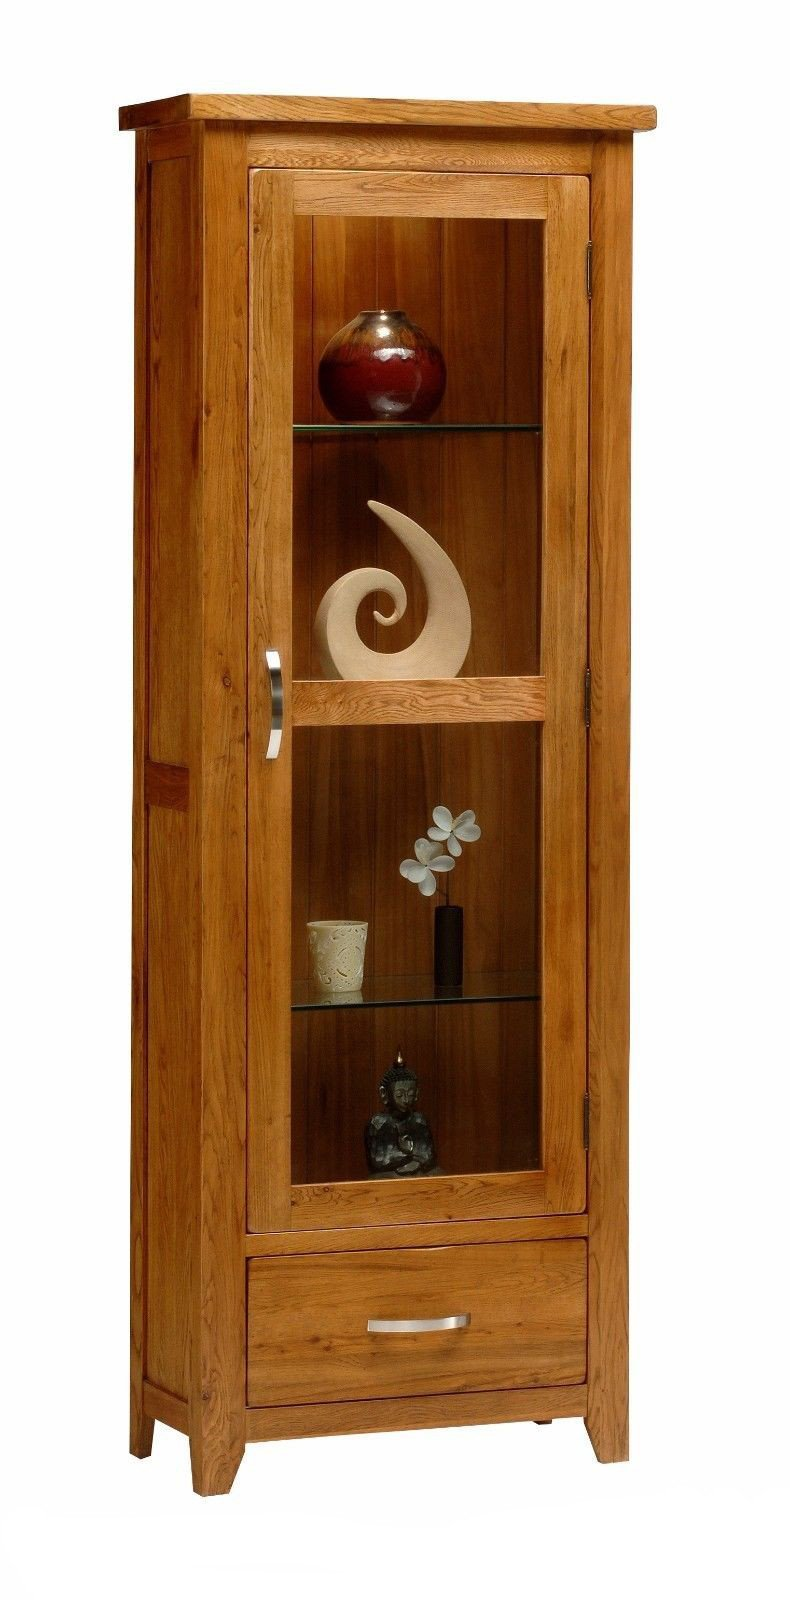 Wessex Country Oak One Door Glass Display Unit - Oak Village